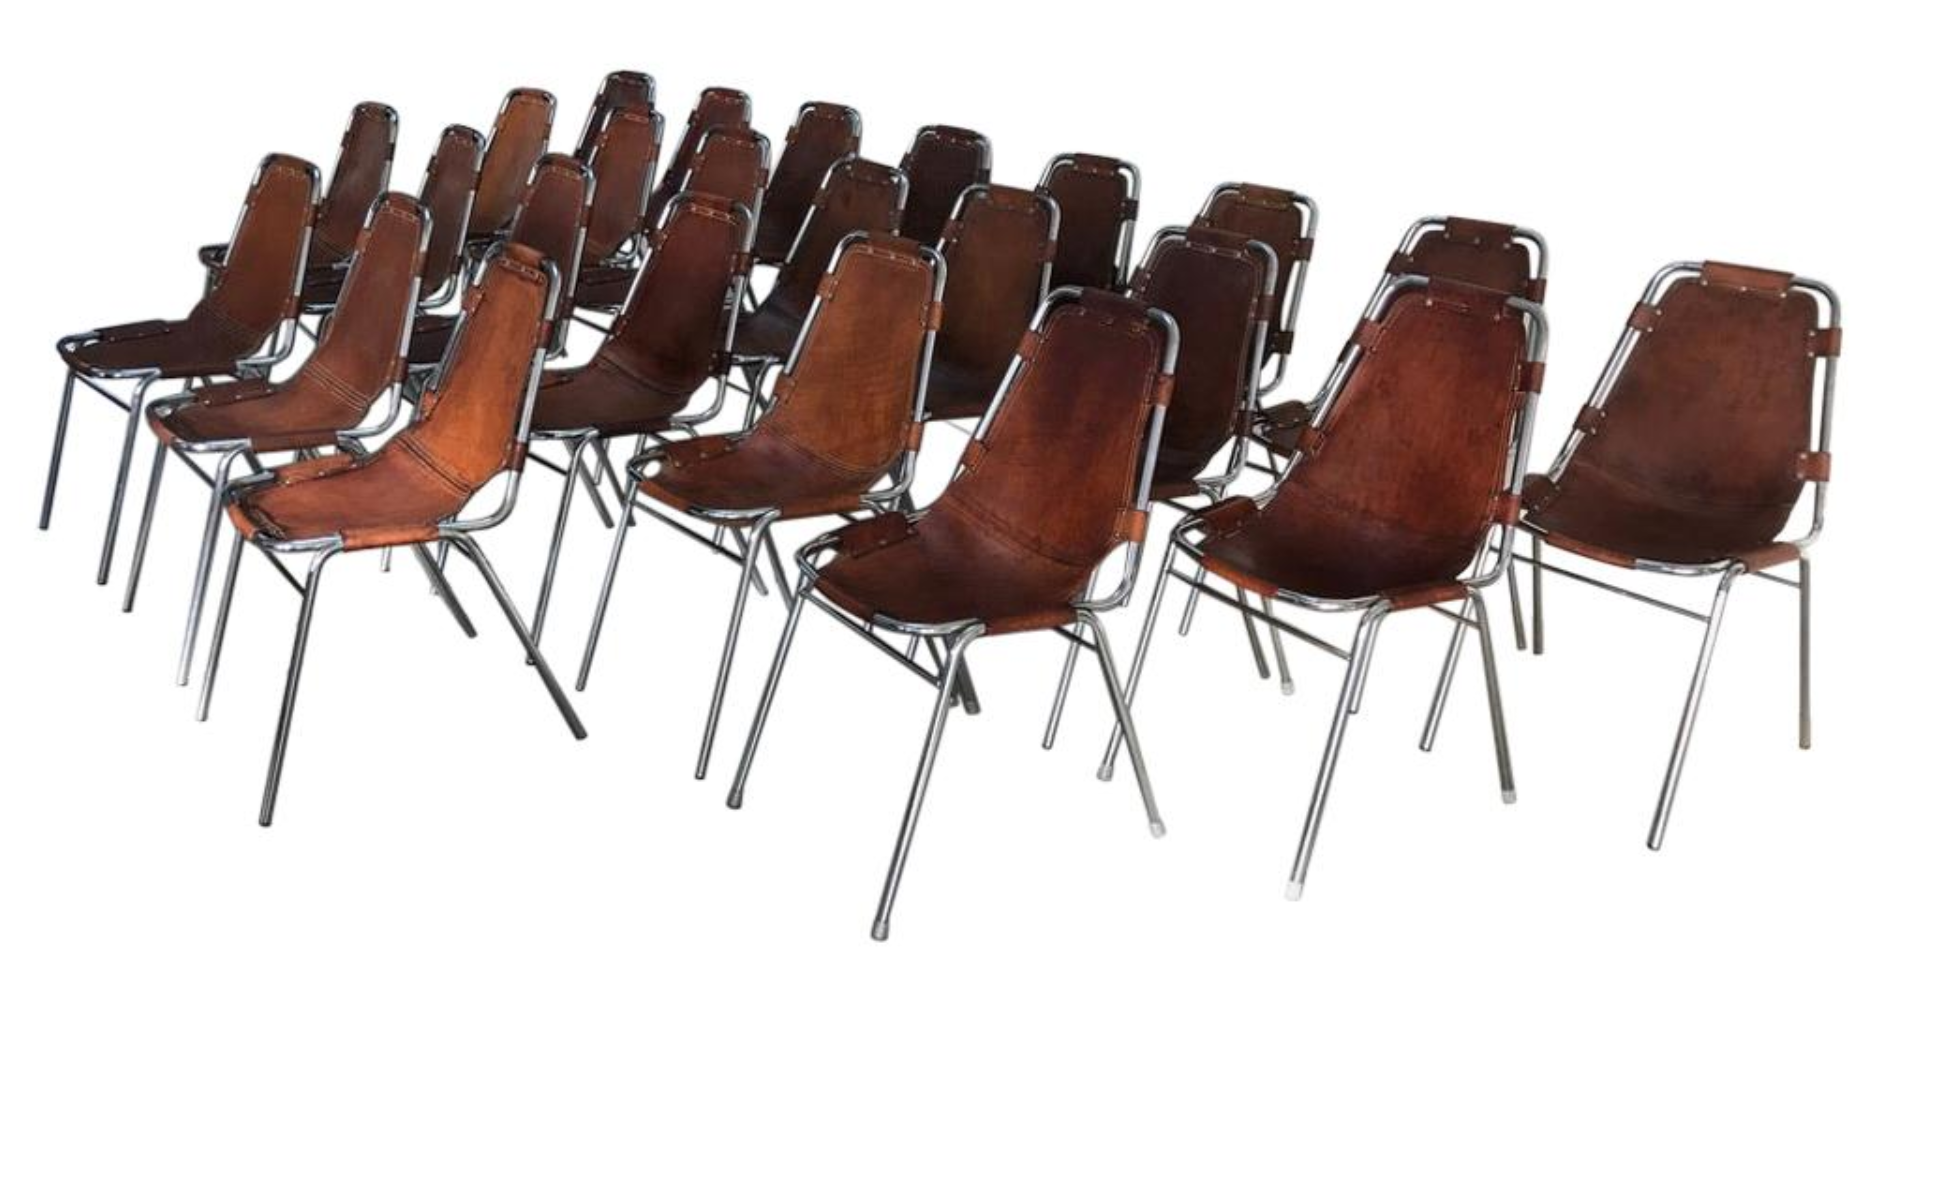 Retro Vintage 1960 Charlotte Perriand  Les Arcs Ski Resort  24 Leather Dining Chairs